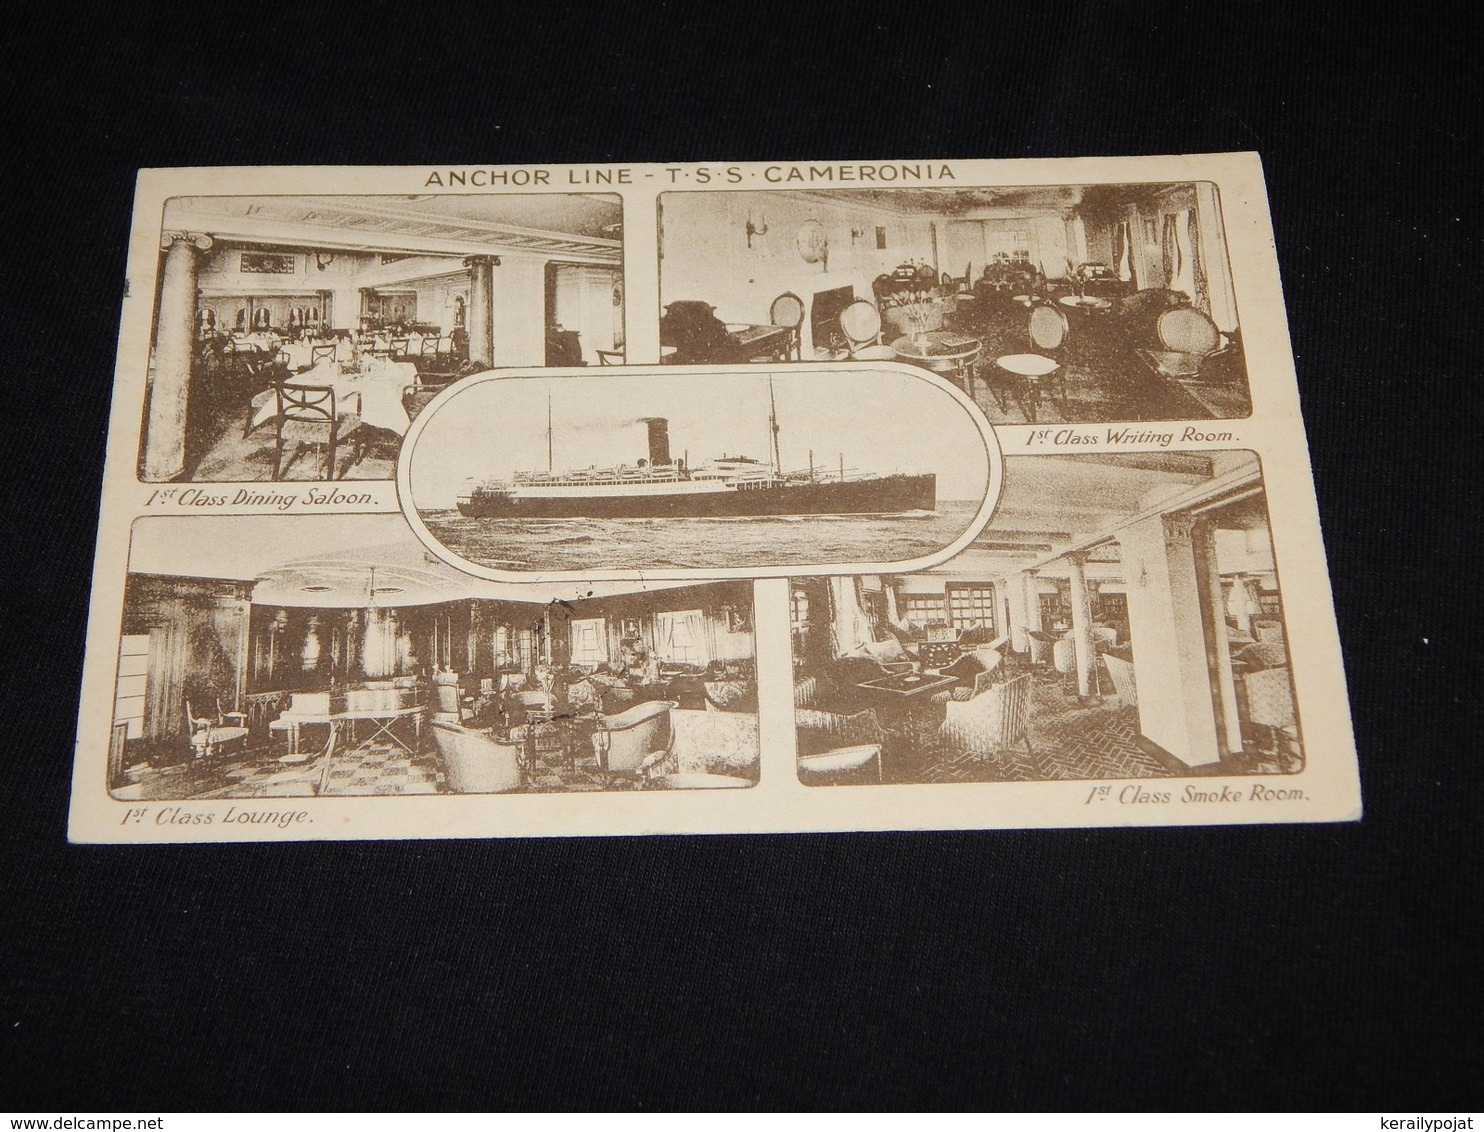 Steamer T.S.S. Cameronia Anchor Line Multi-picture Card -21__(20387) - Paquebote